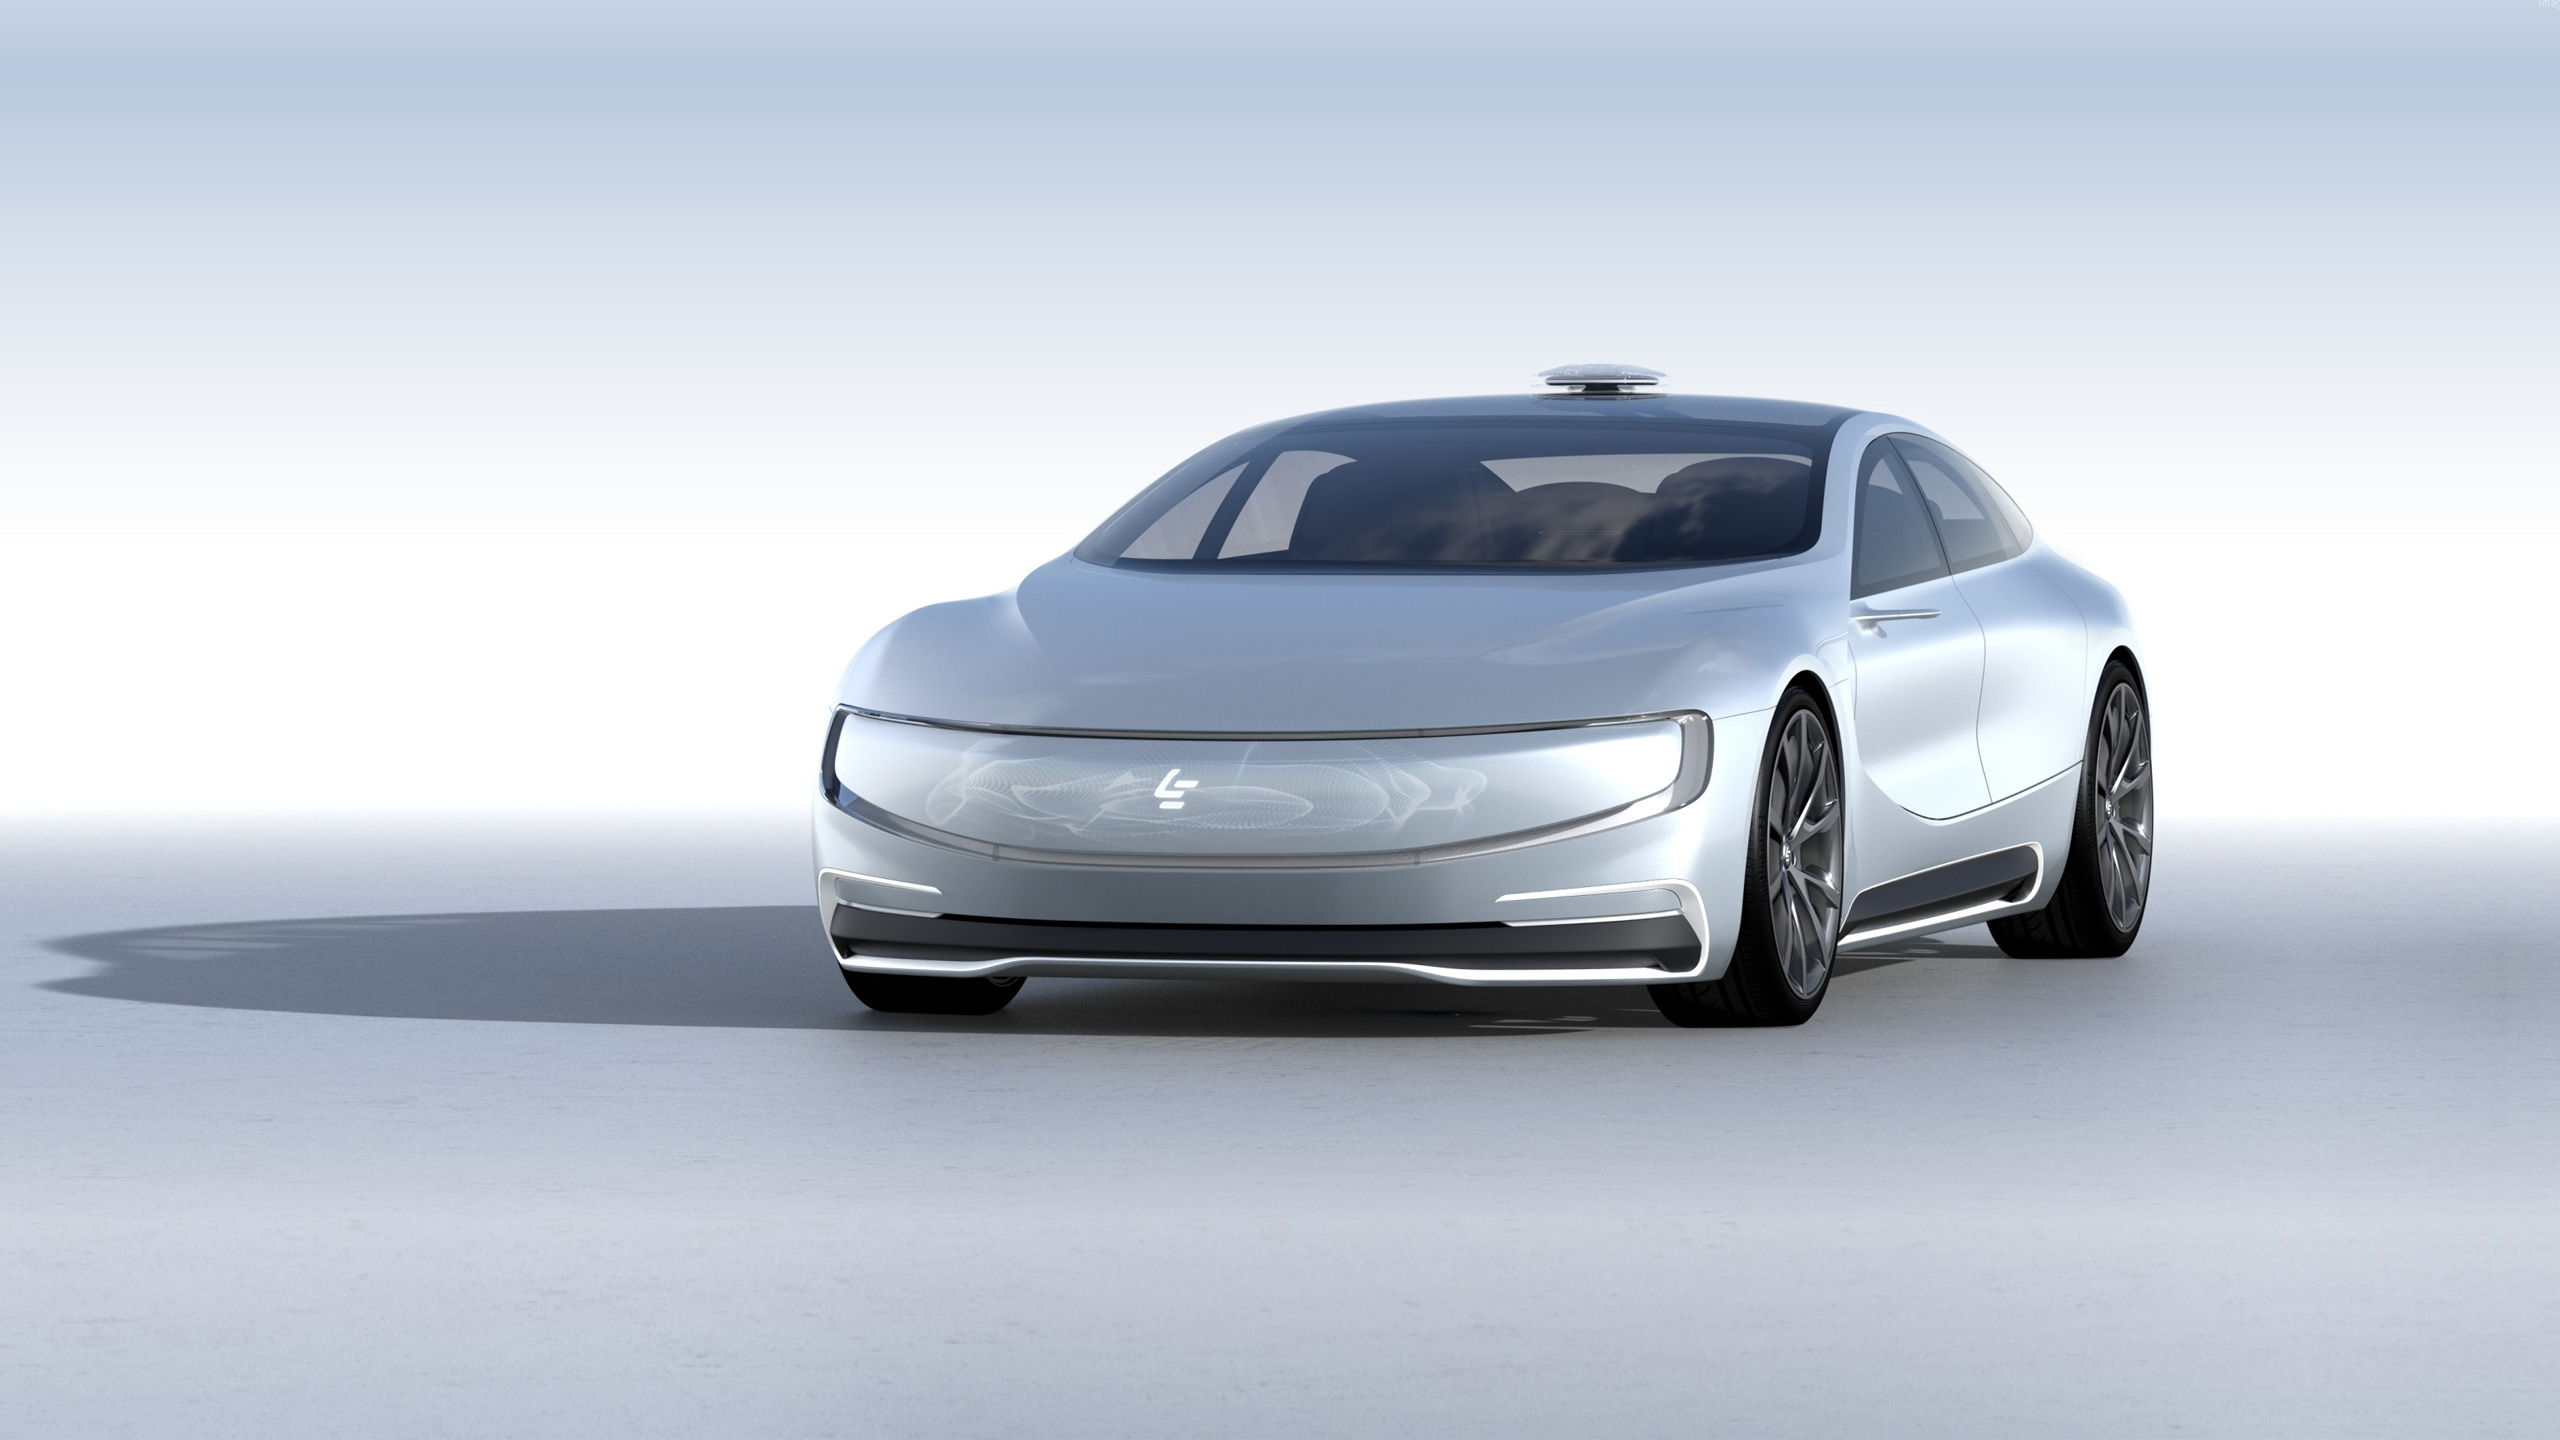 LeEco LeSEE Electric Concept Car Wallpaper